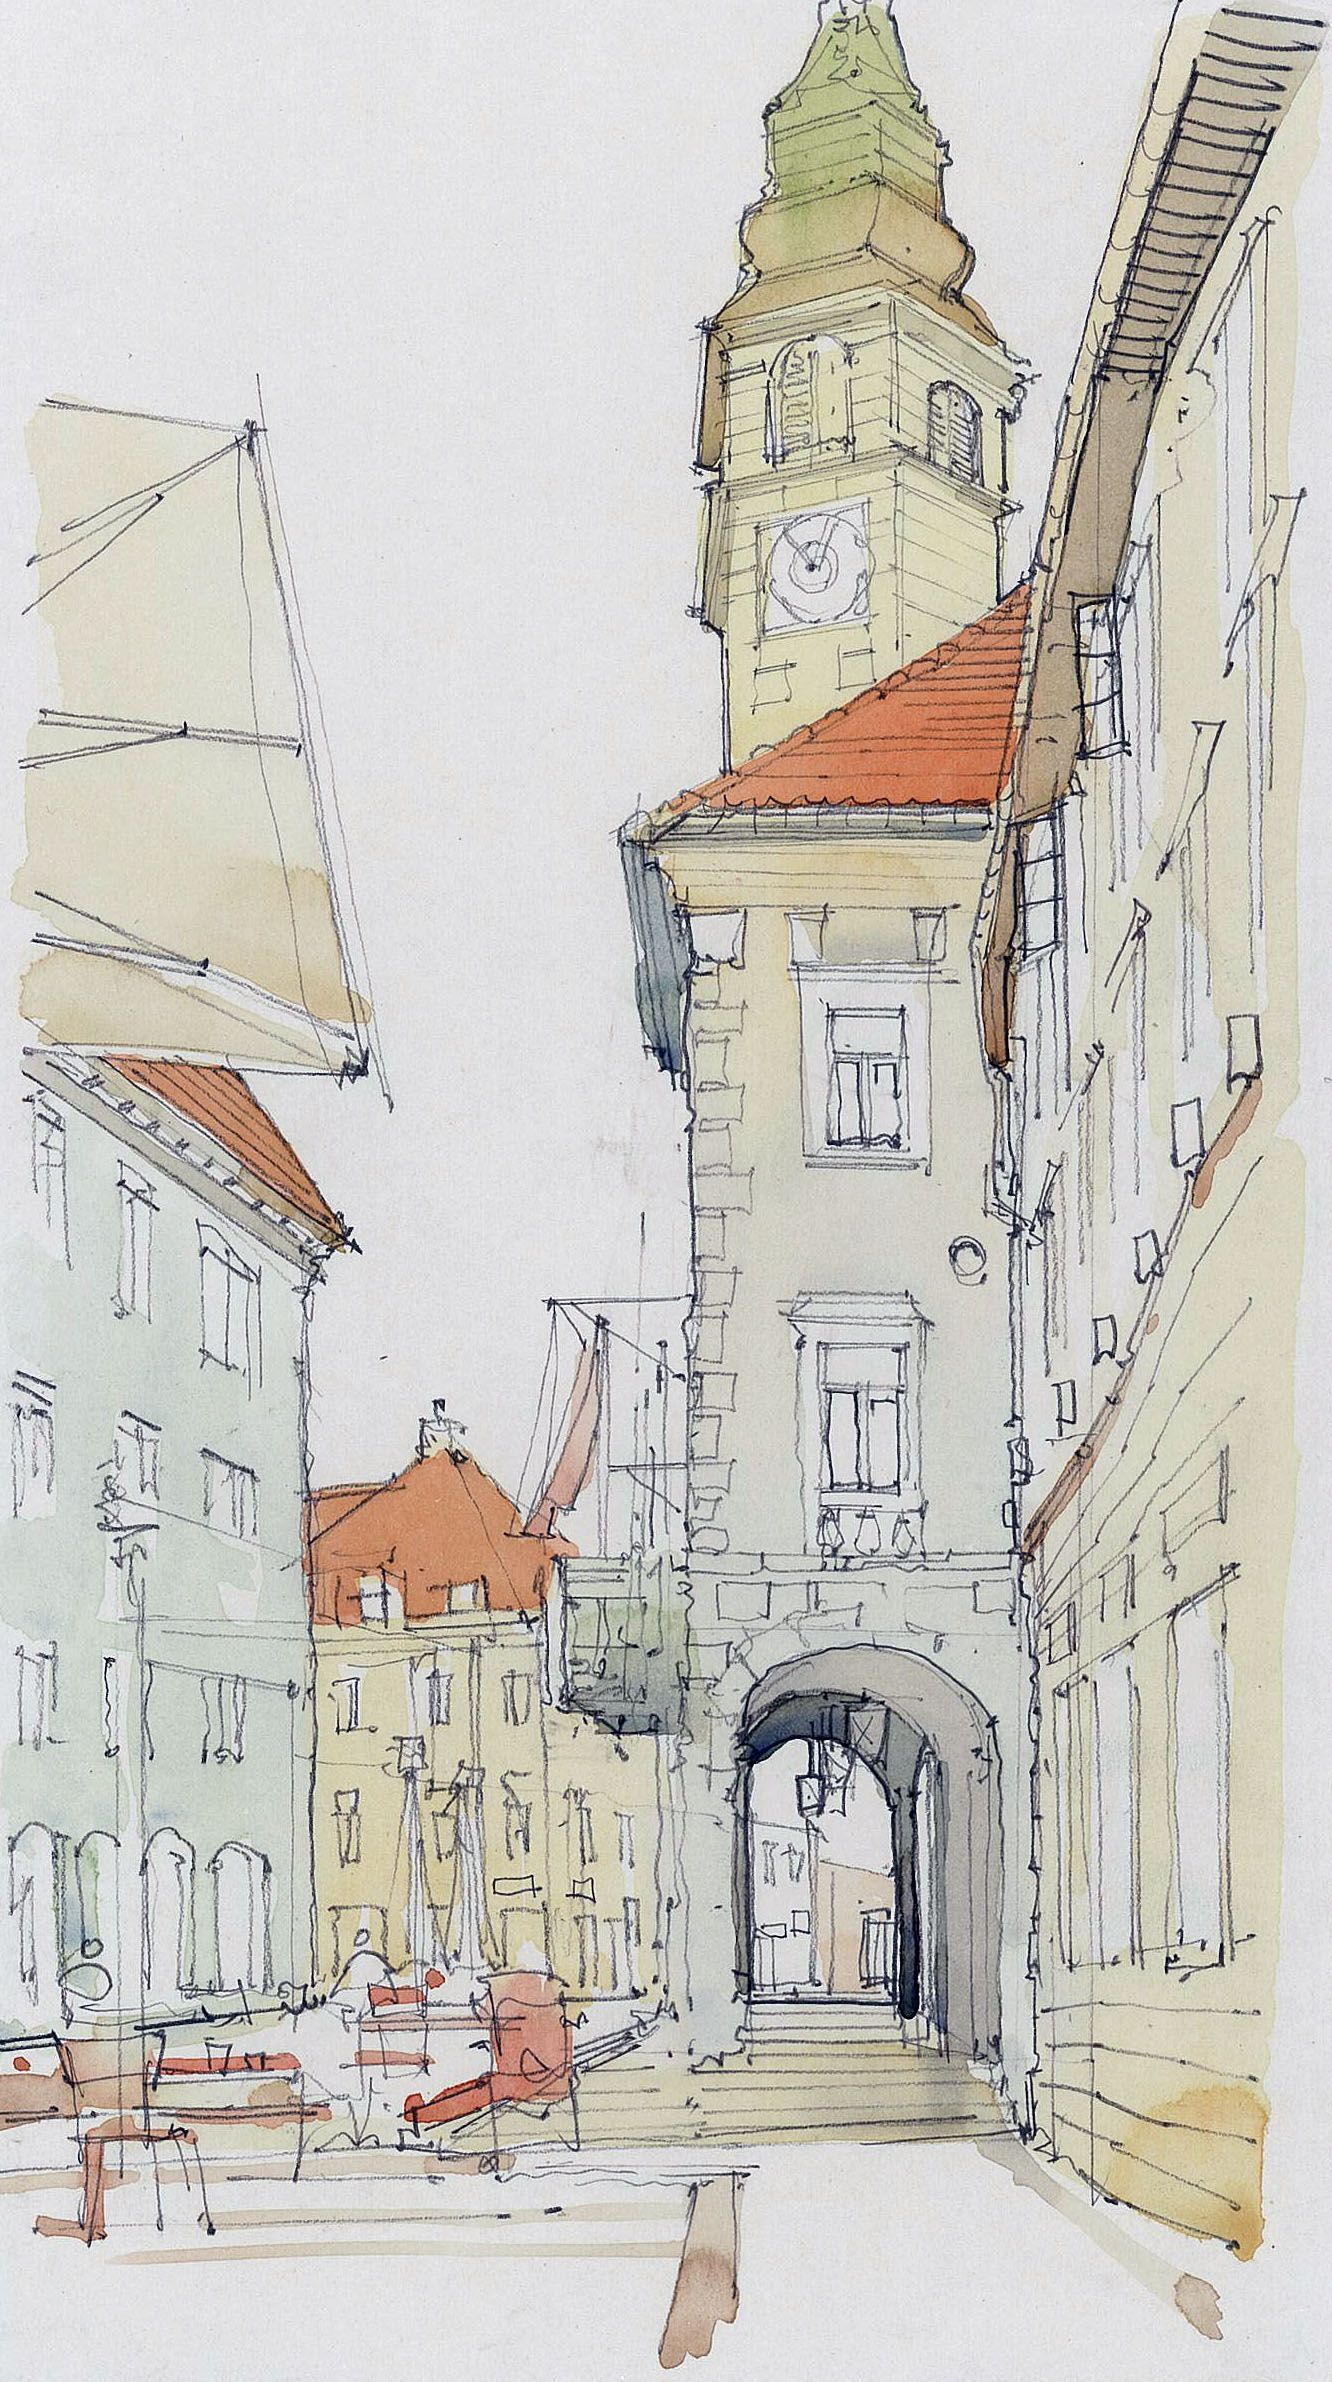 Architectual Illustrations Ljubljana City Centre Slovenia Architectural Illustration